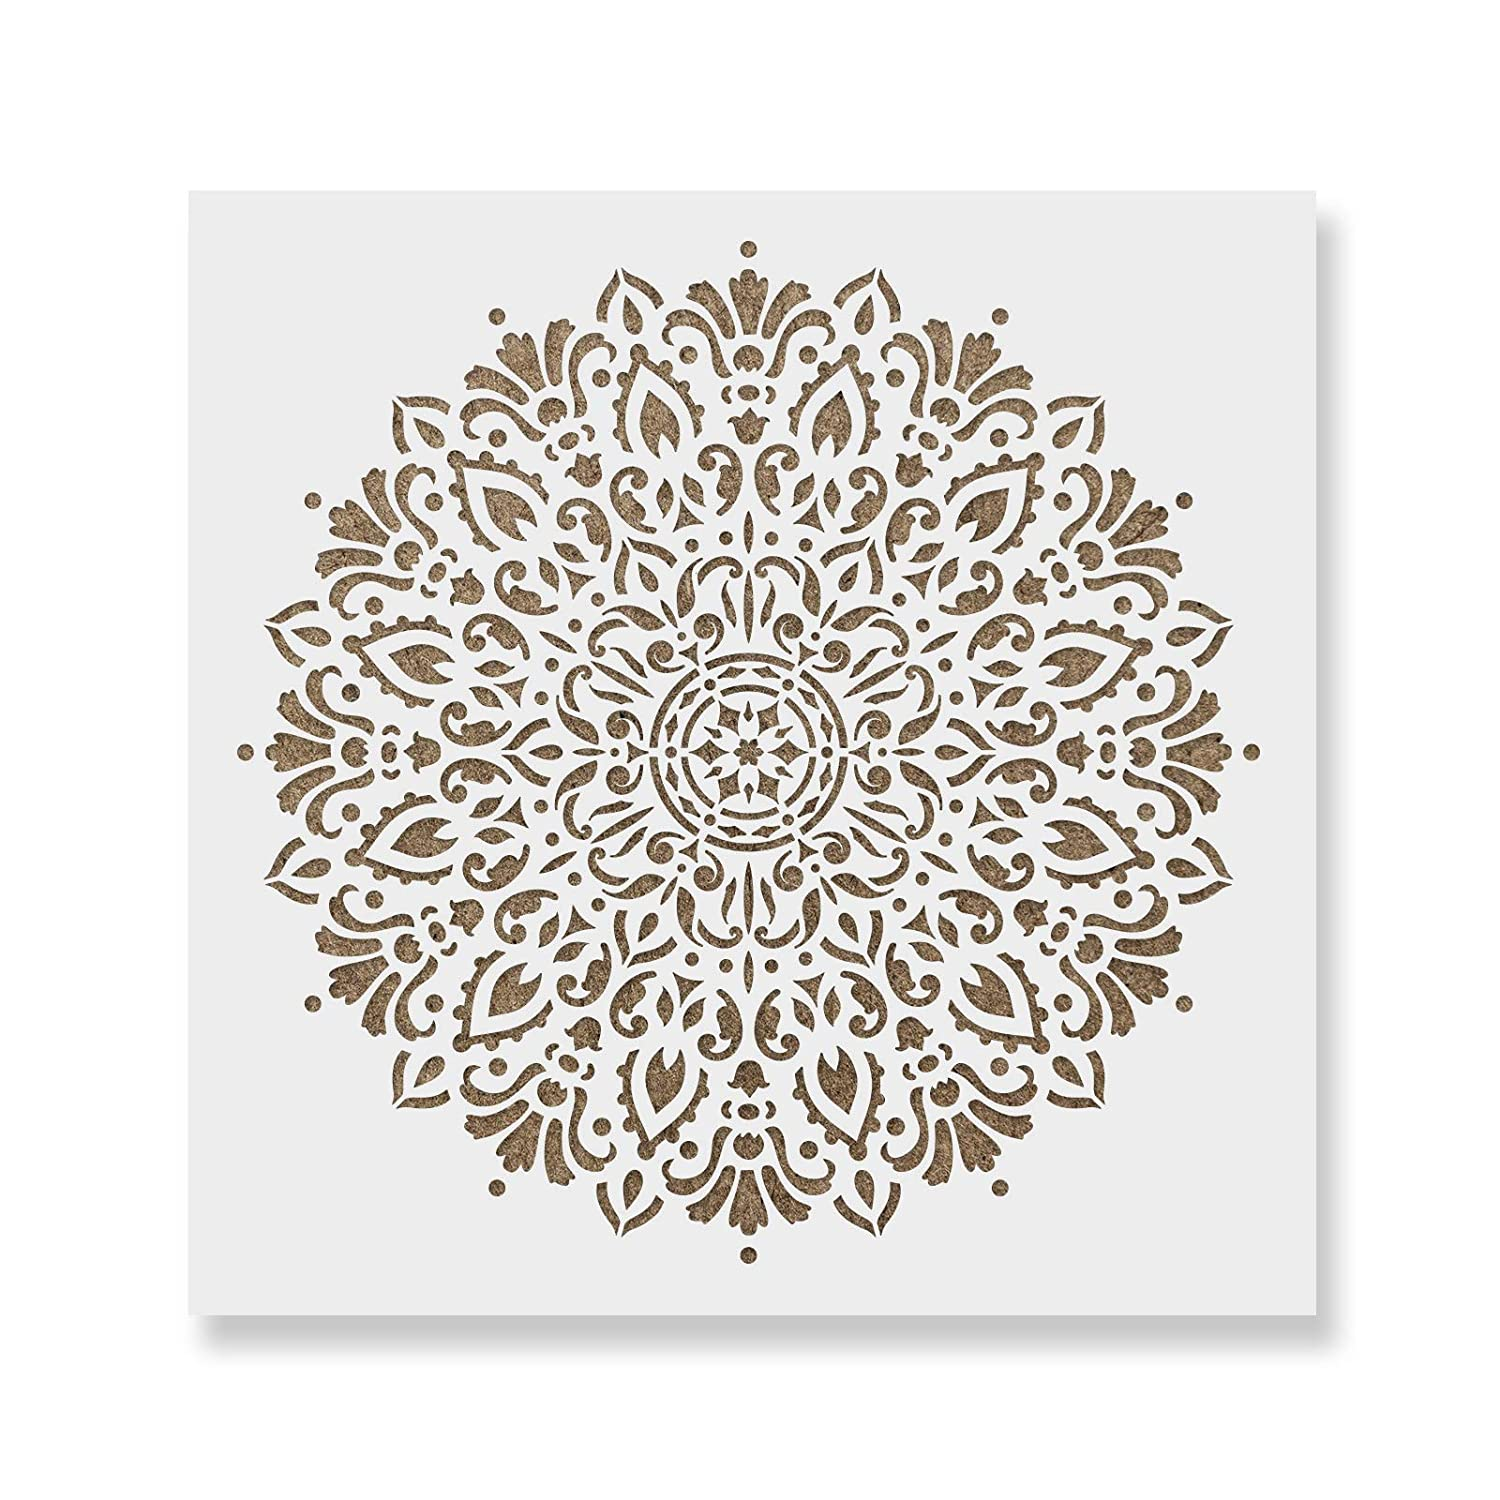 Harmony Mandala Stencil Template - Reusable Stencil for Painting Mandala  Designs - 46